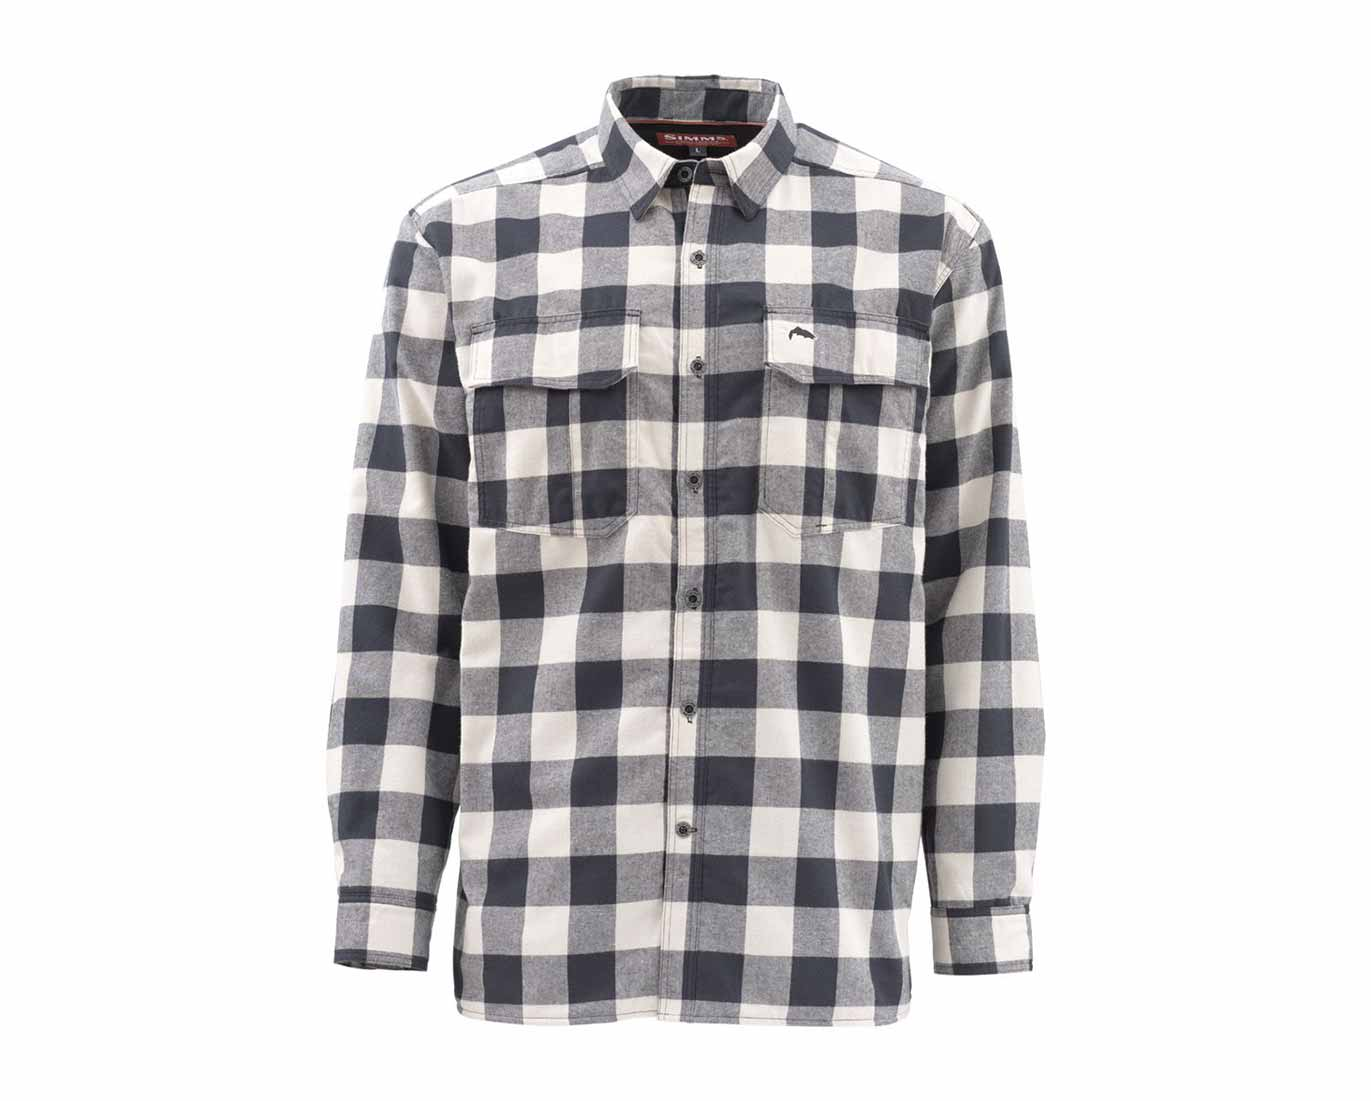 Simms Coldweather Long Sleeve Shirt - Sand Buffalo Plaid_1.jpg